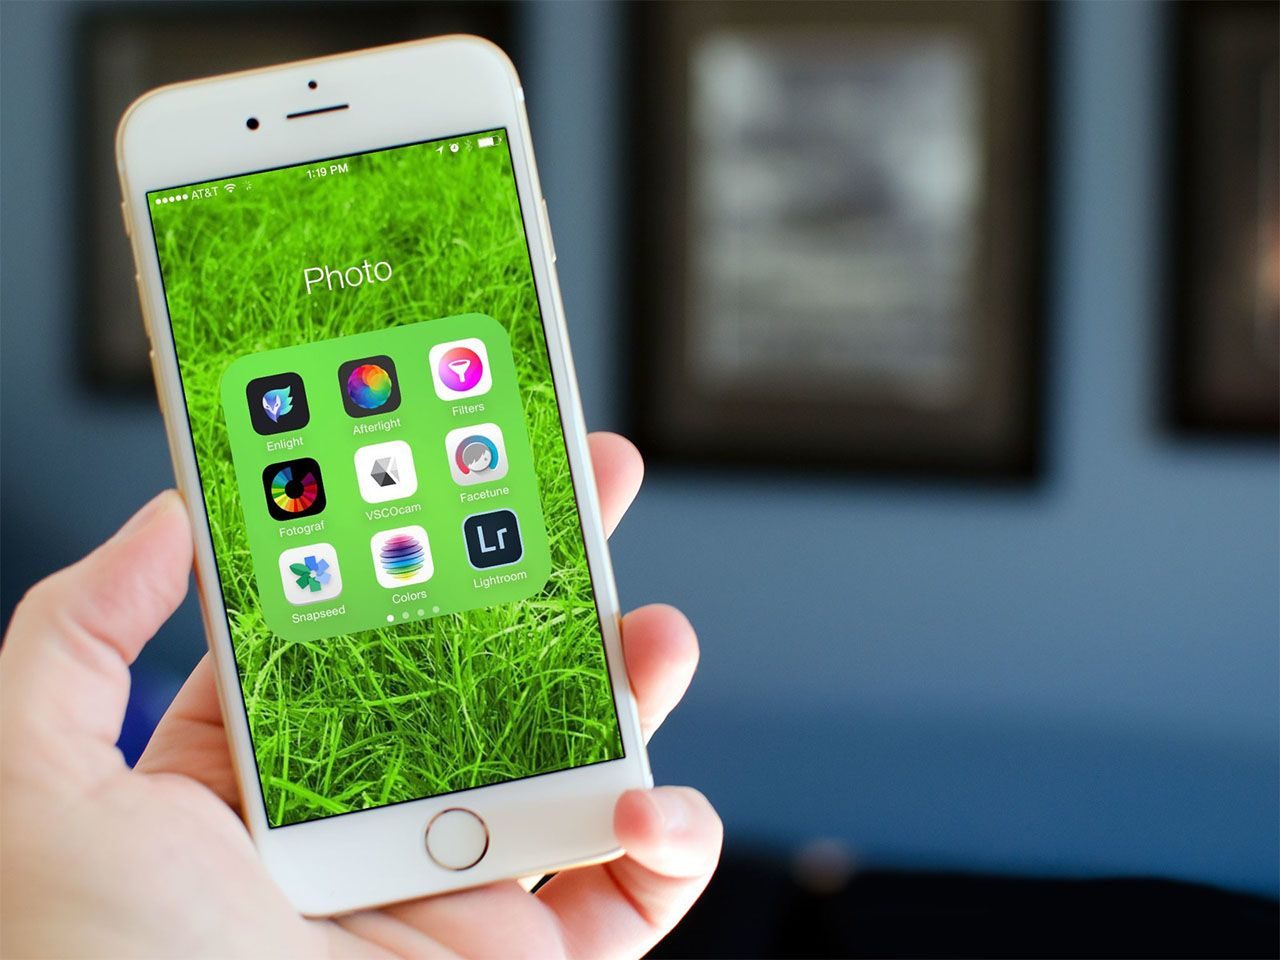 Are you searching for the best photo editing apps for